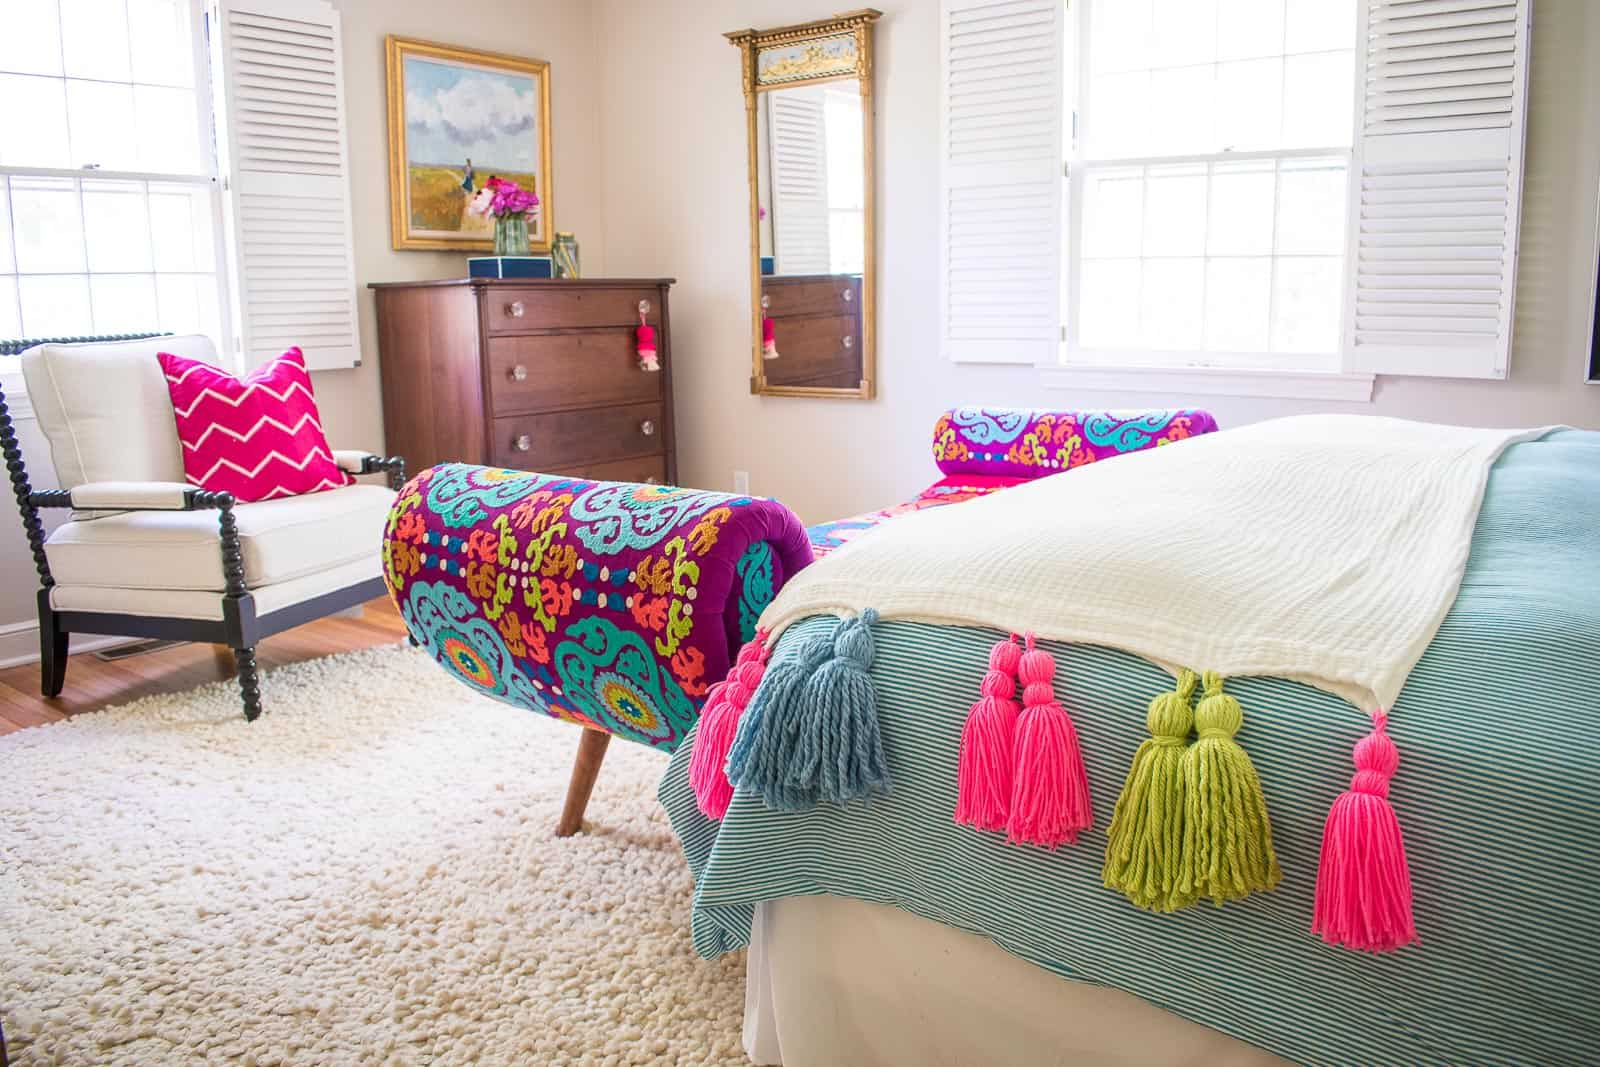 tassel blanket in master bedroom